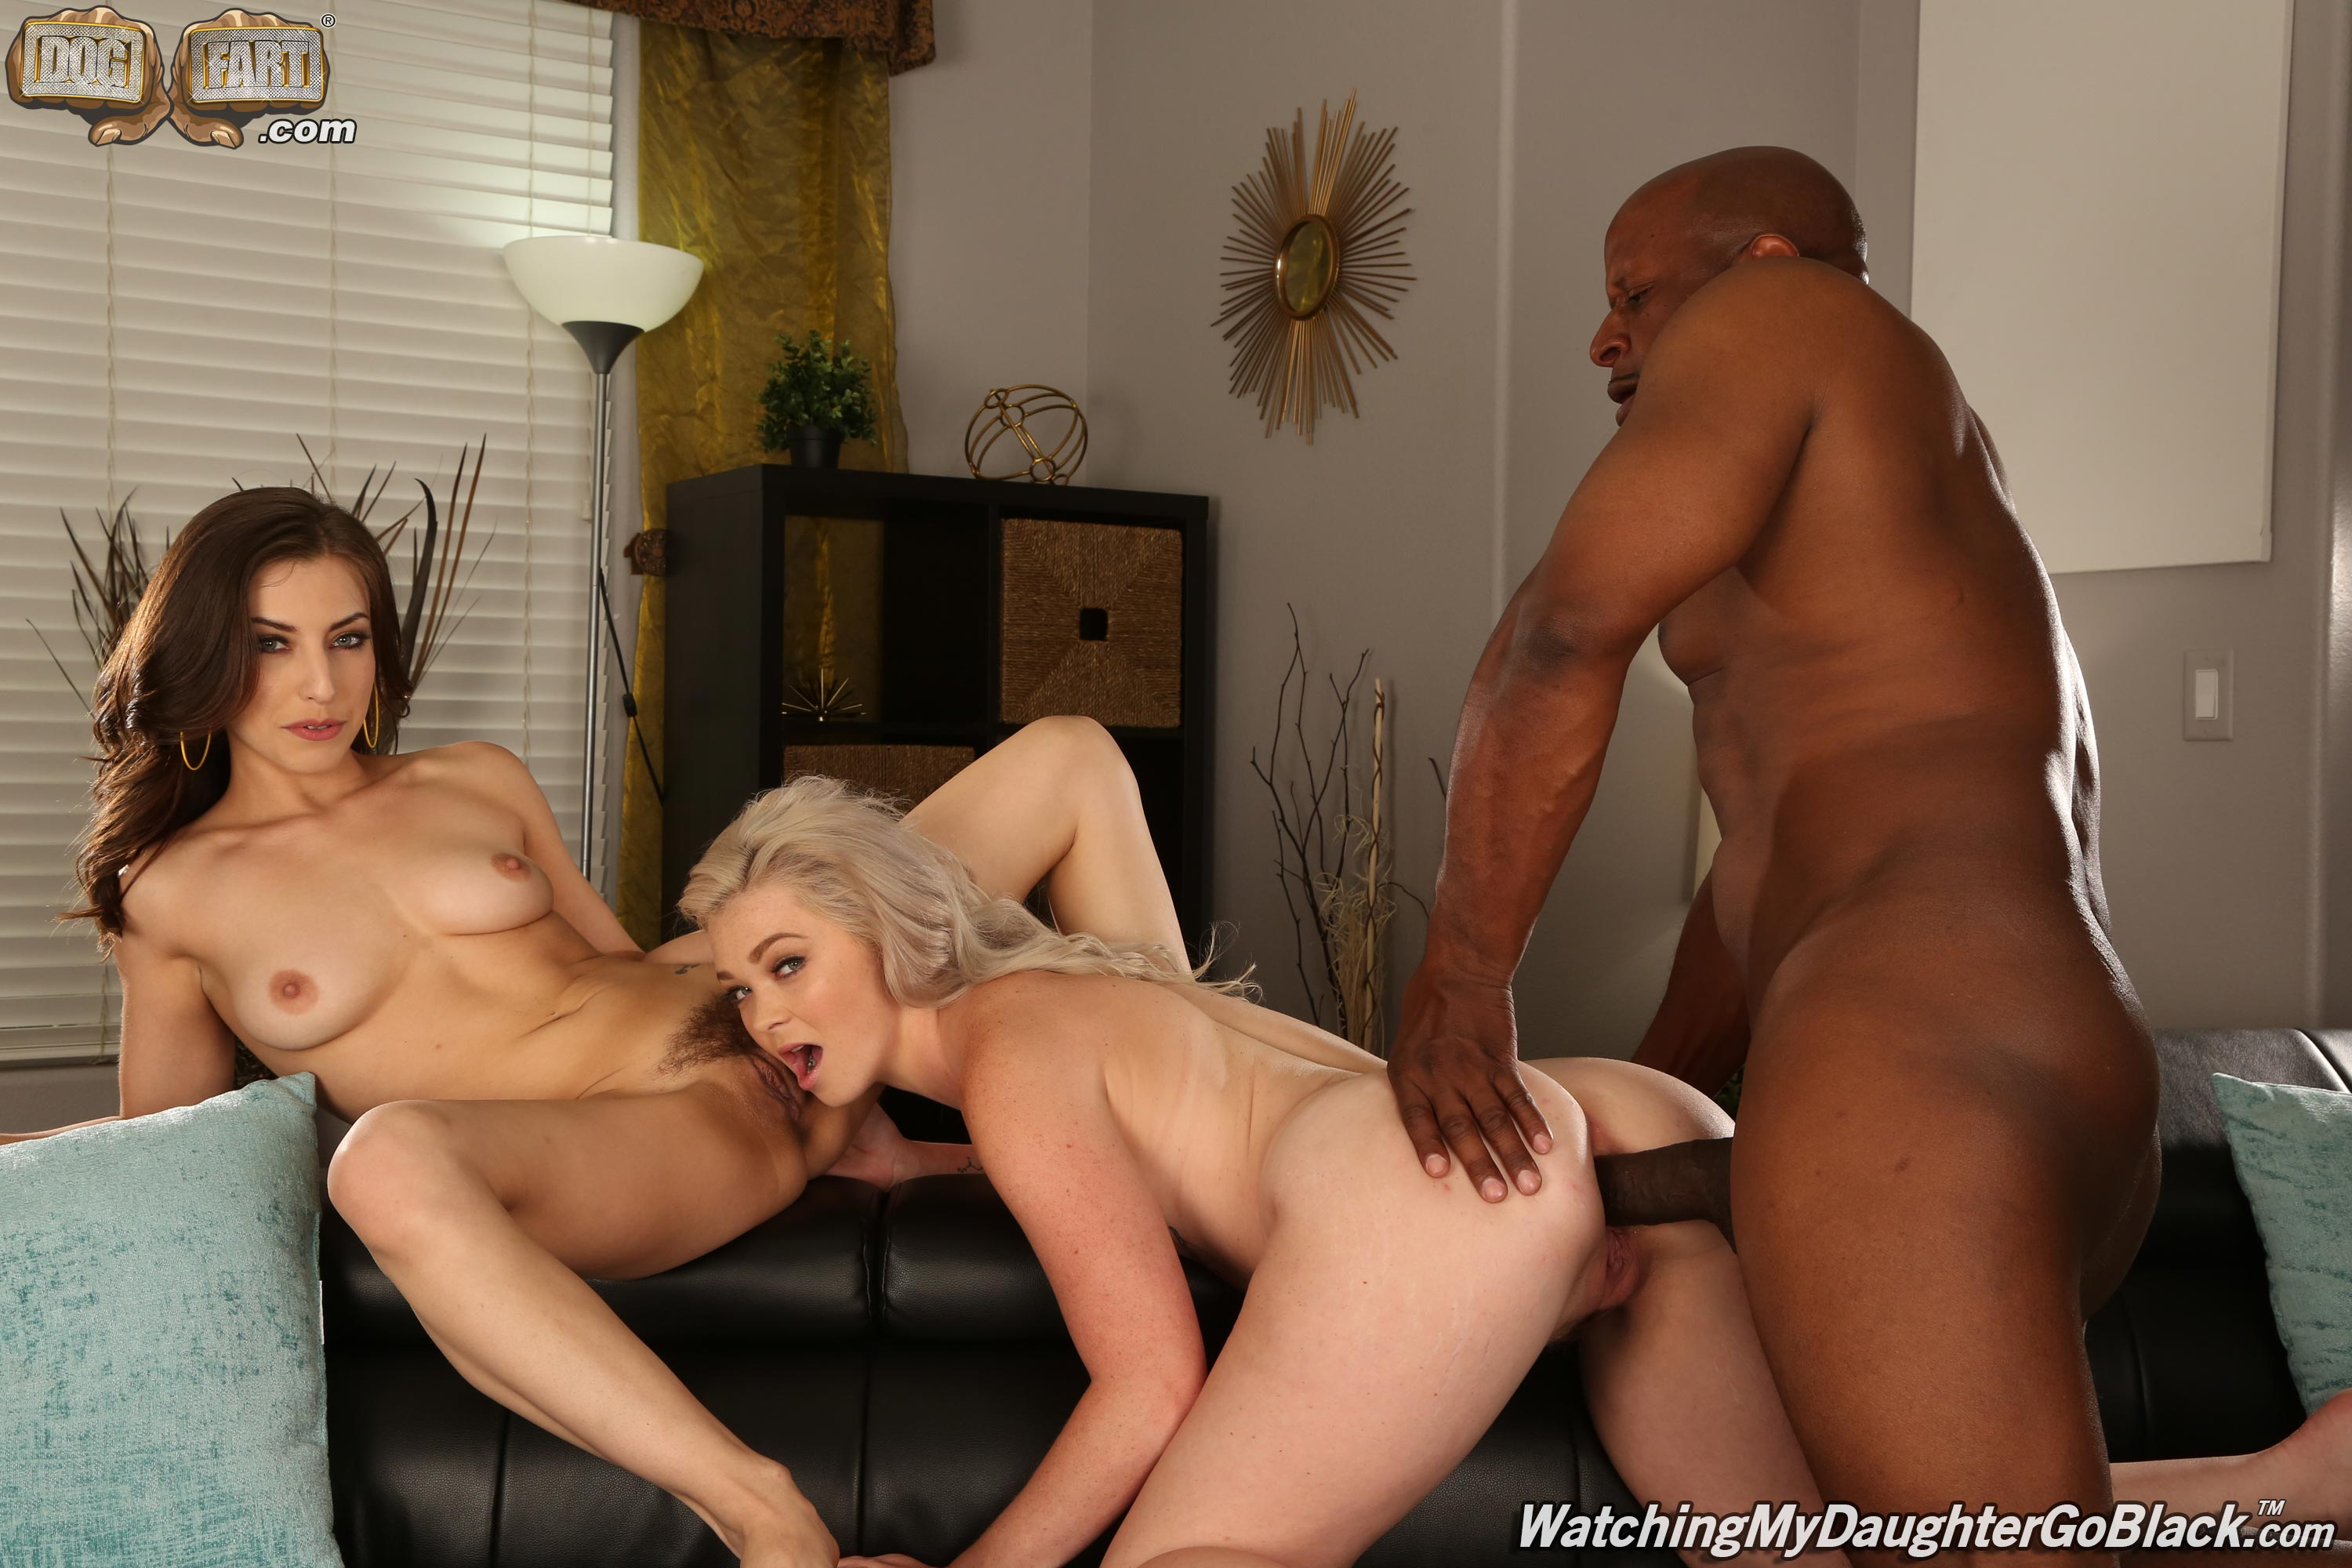 Dogfart 'and Spencer Bradley - Watching My Daughter Go Black' starring Kay Carter (Photo 19)